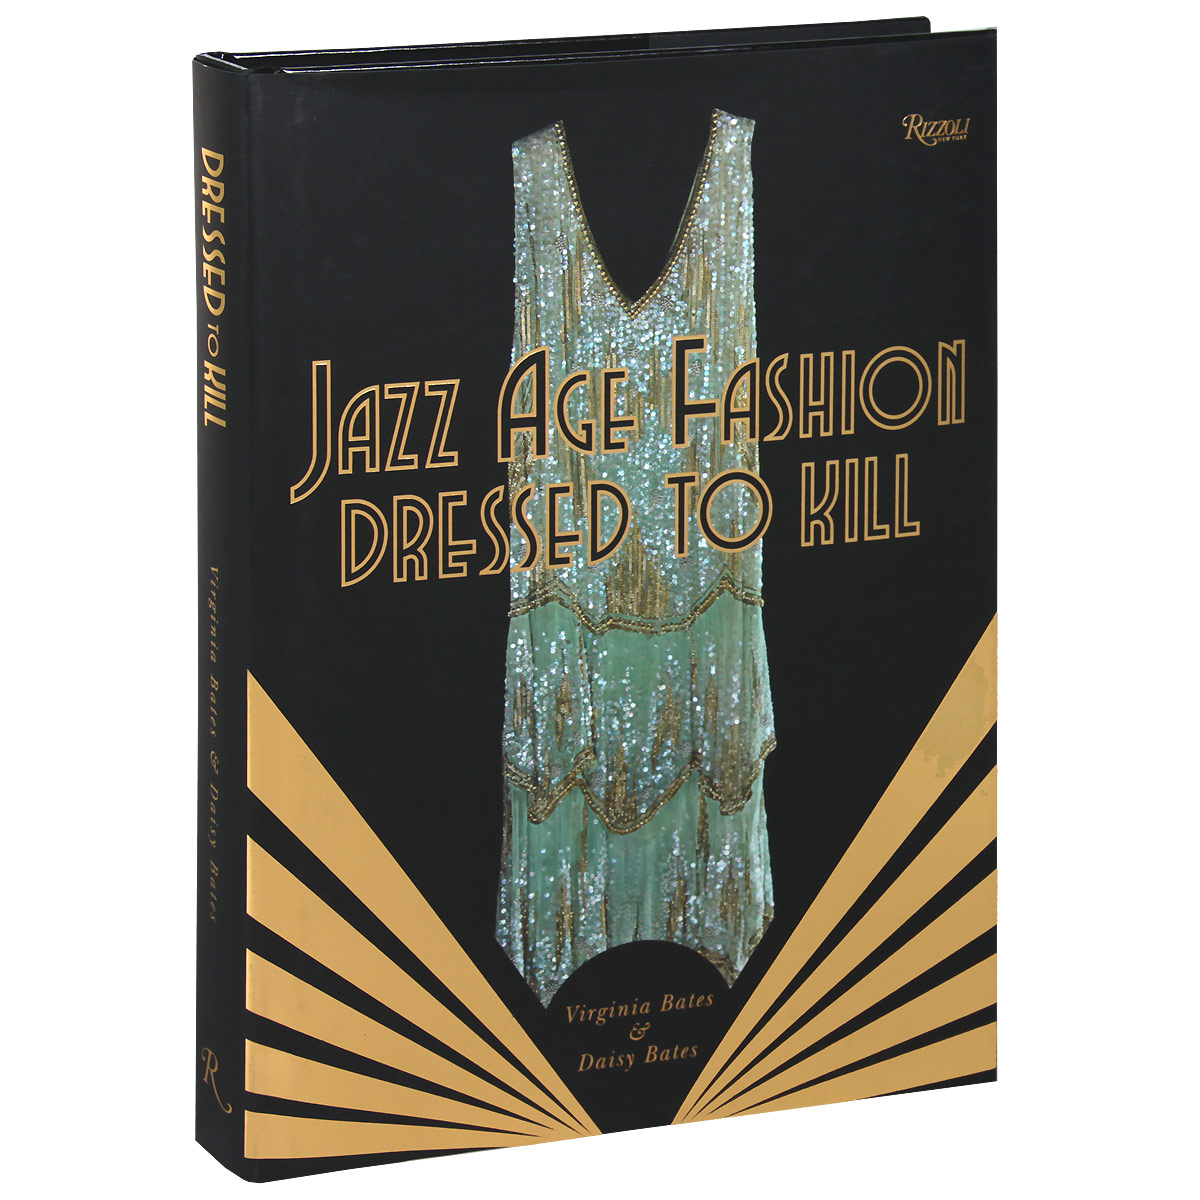 Dressed to Kill: Jazz Age Fashion fitzgerald s tales of the jazz age